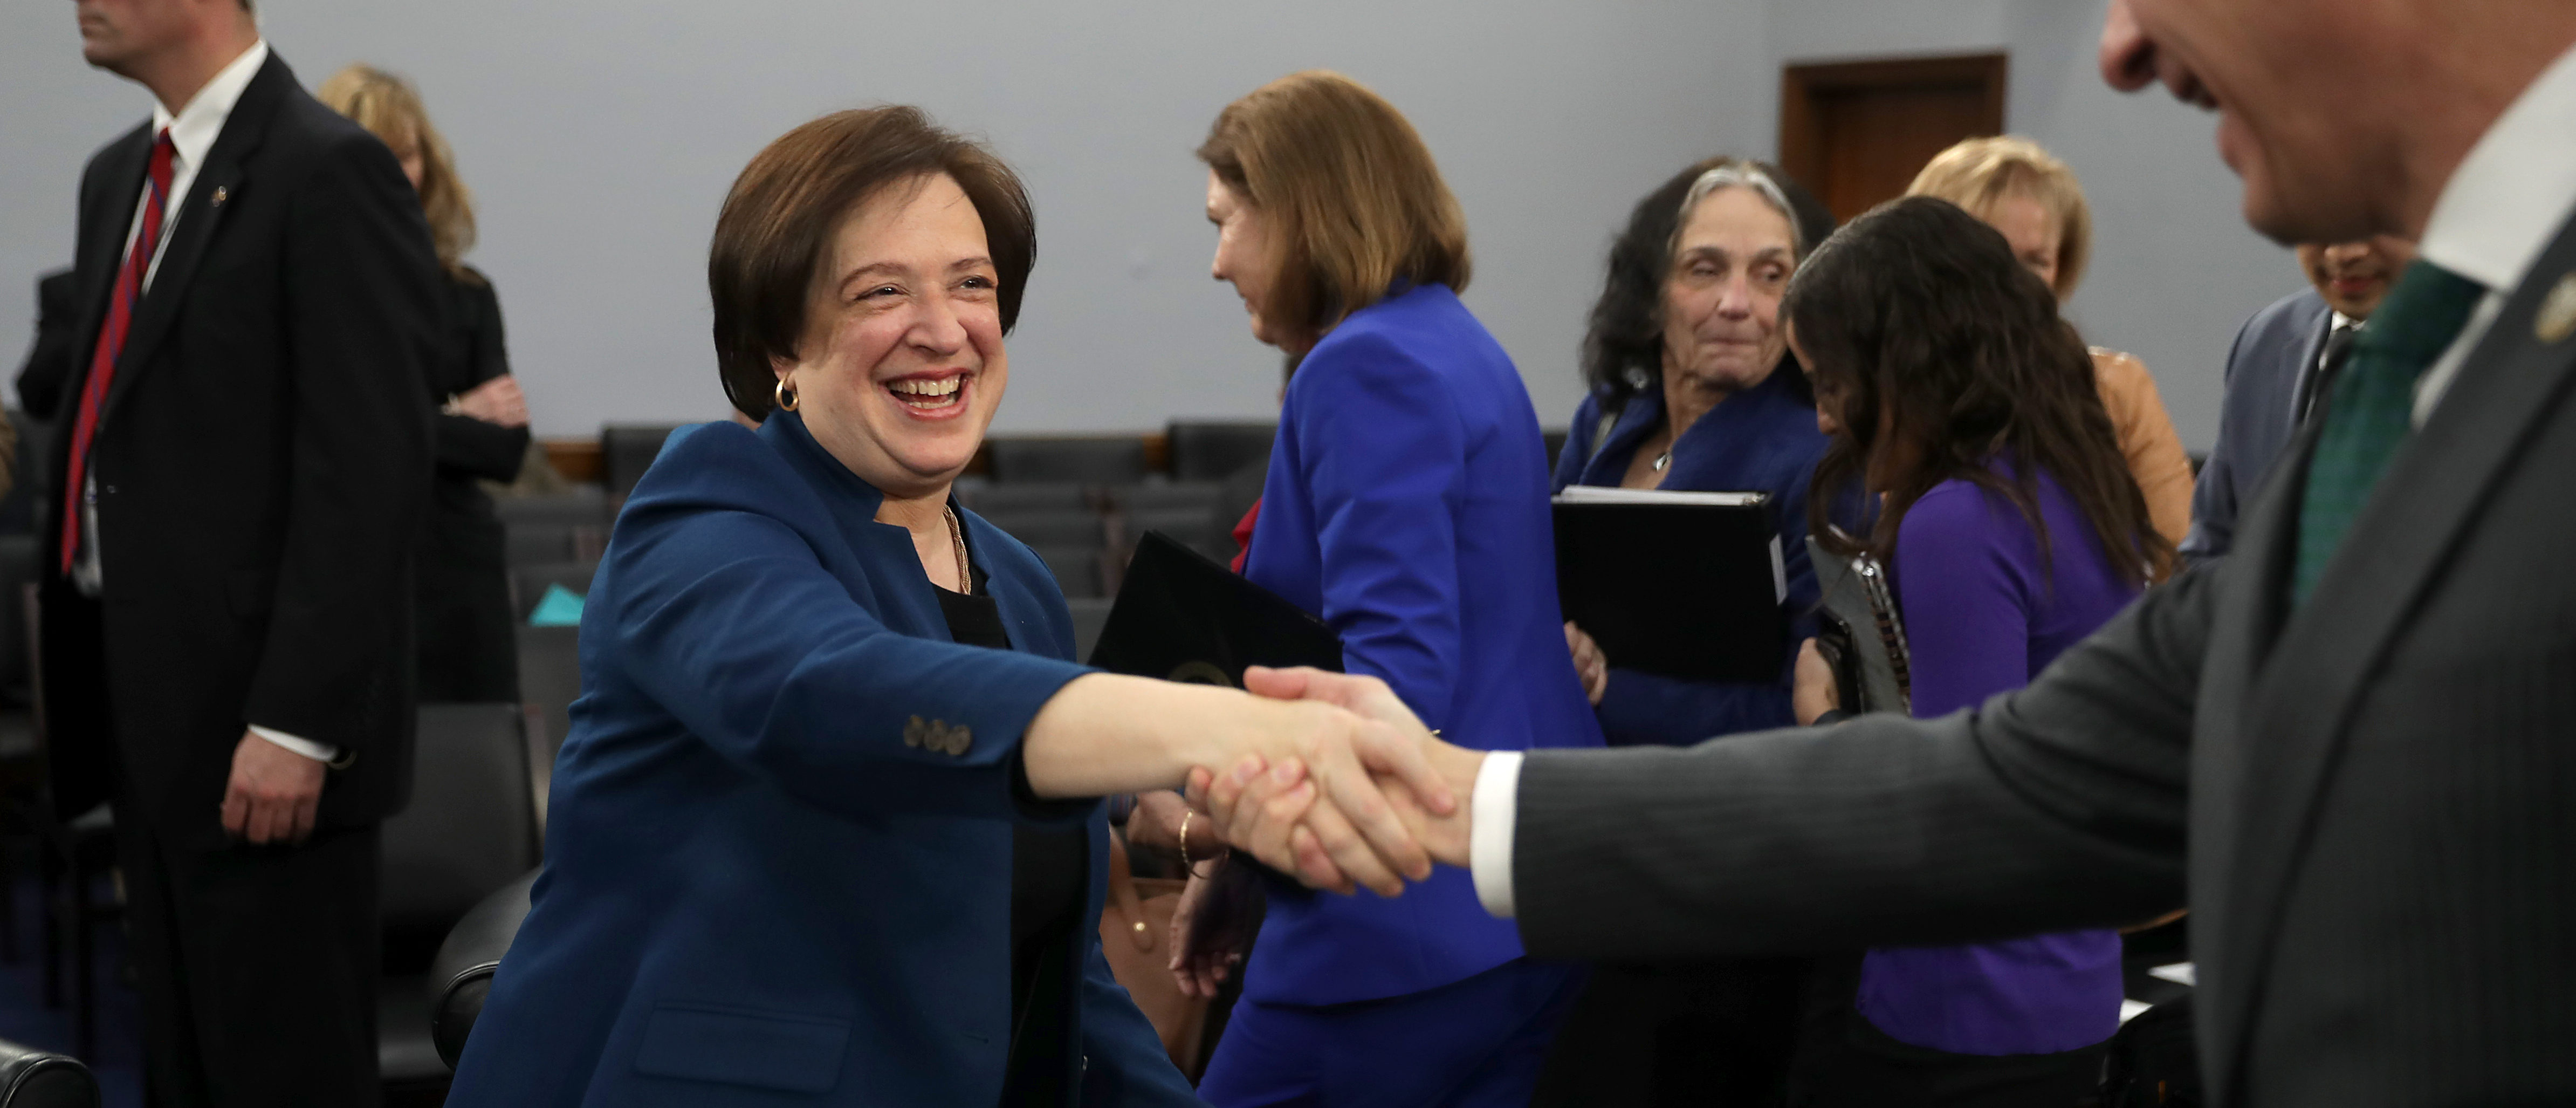 Justice Elana Kagan shakes hands with Rep. Matt Cartwright (D-PA) after a hearing about the Supreme Court's budget on March 07, 2019. (Chip Somodevilla/Getty Images)